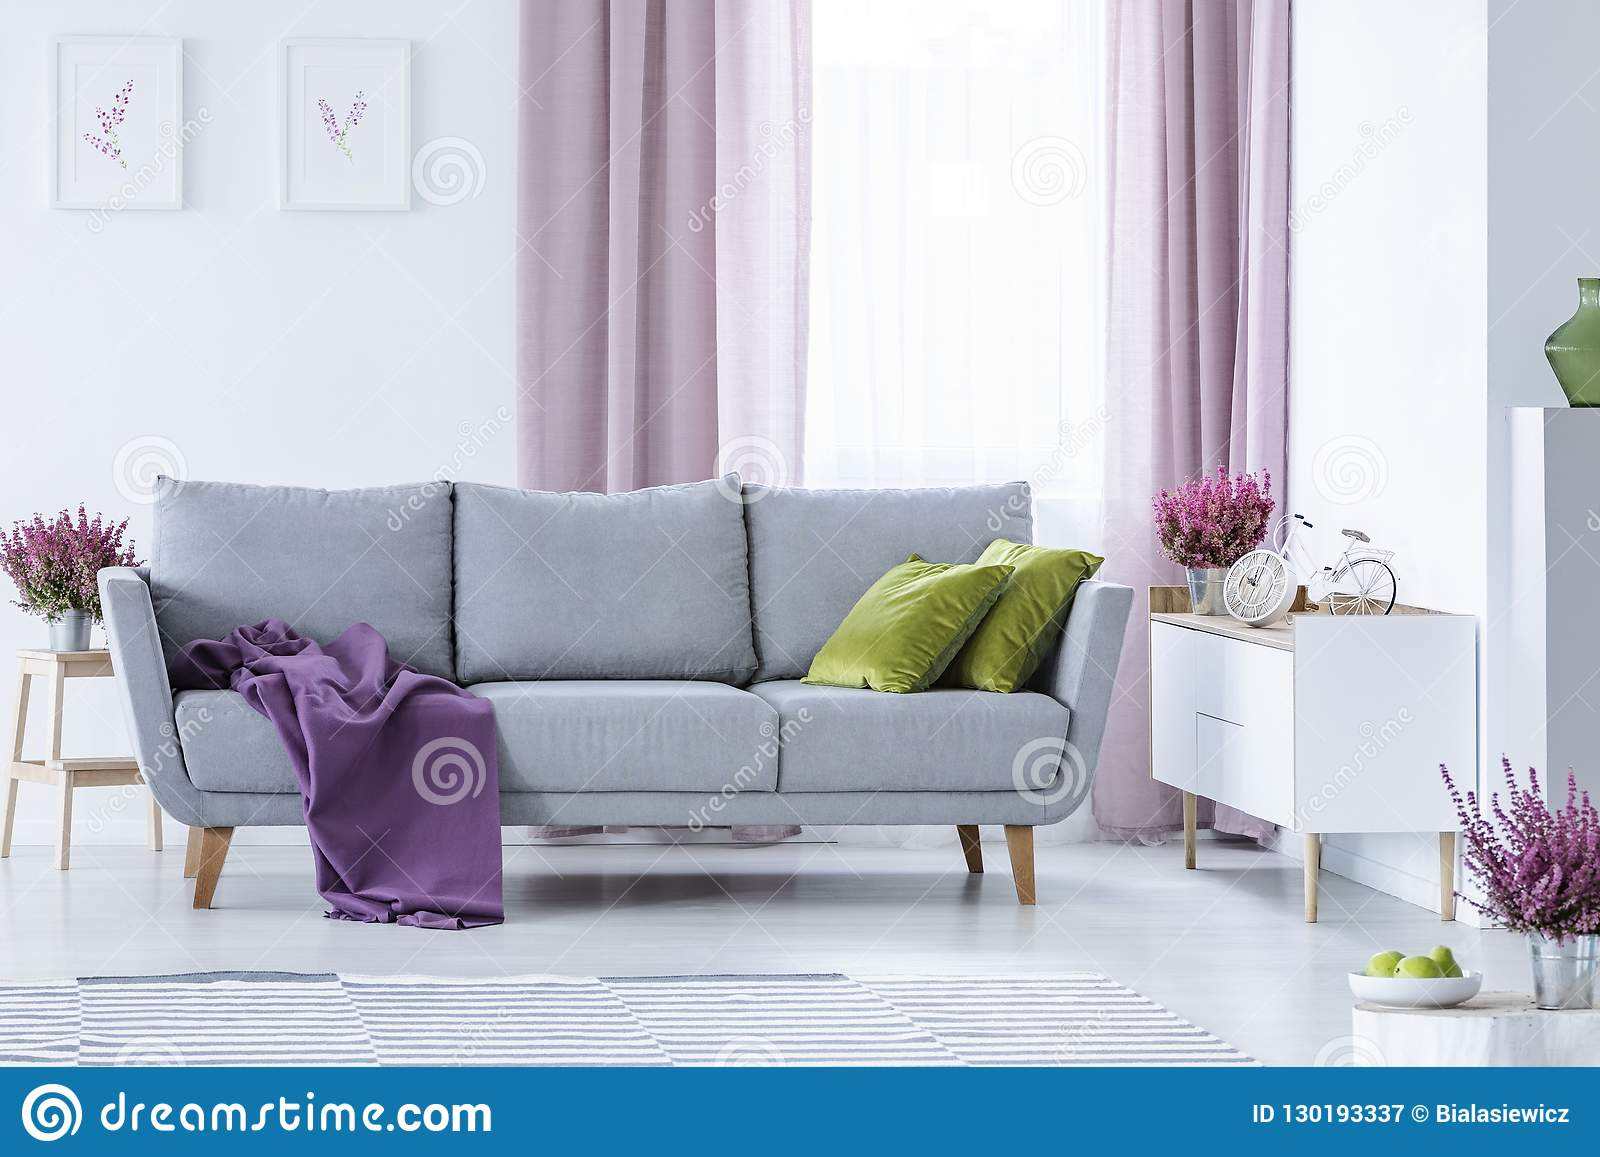 Elegant Living Room With Big Comfortable Grey Couch With Olive Green Pillows And Violet Blanket In The Middle Stock Image Image Of Lilac Estate 130193337